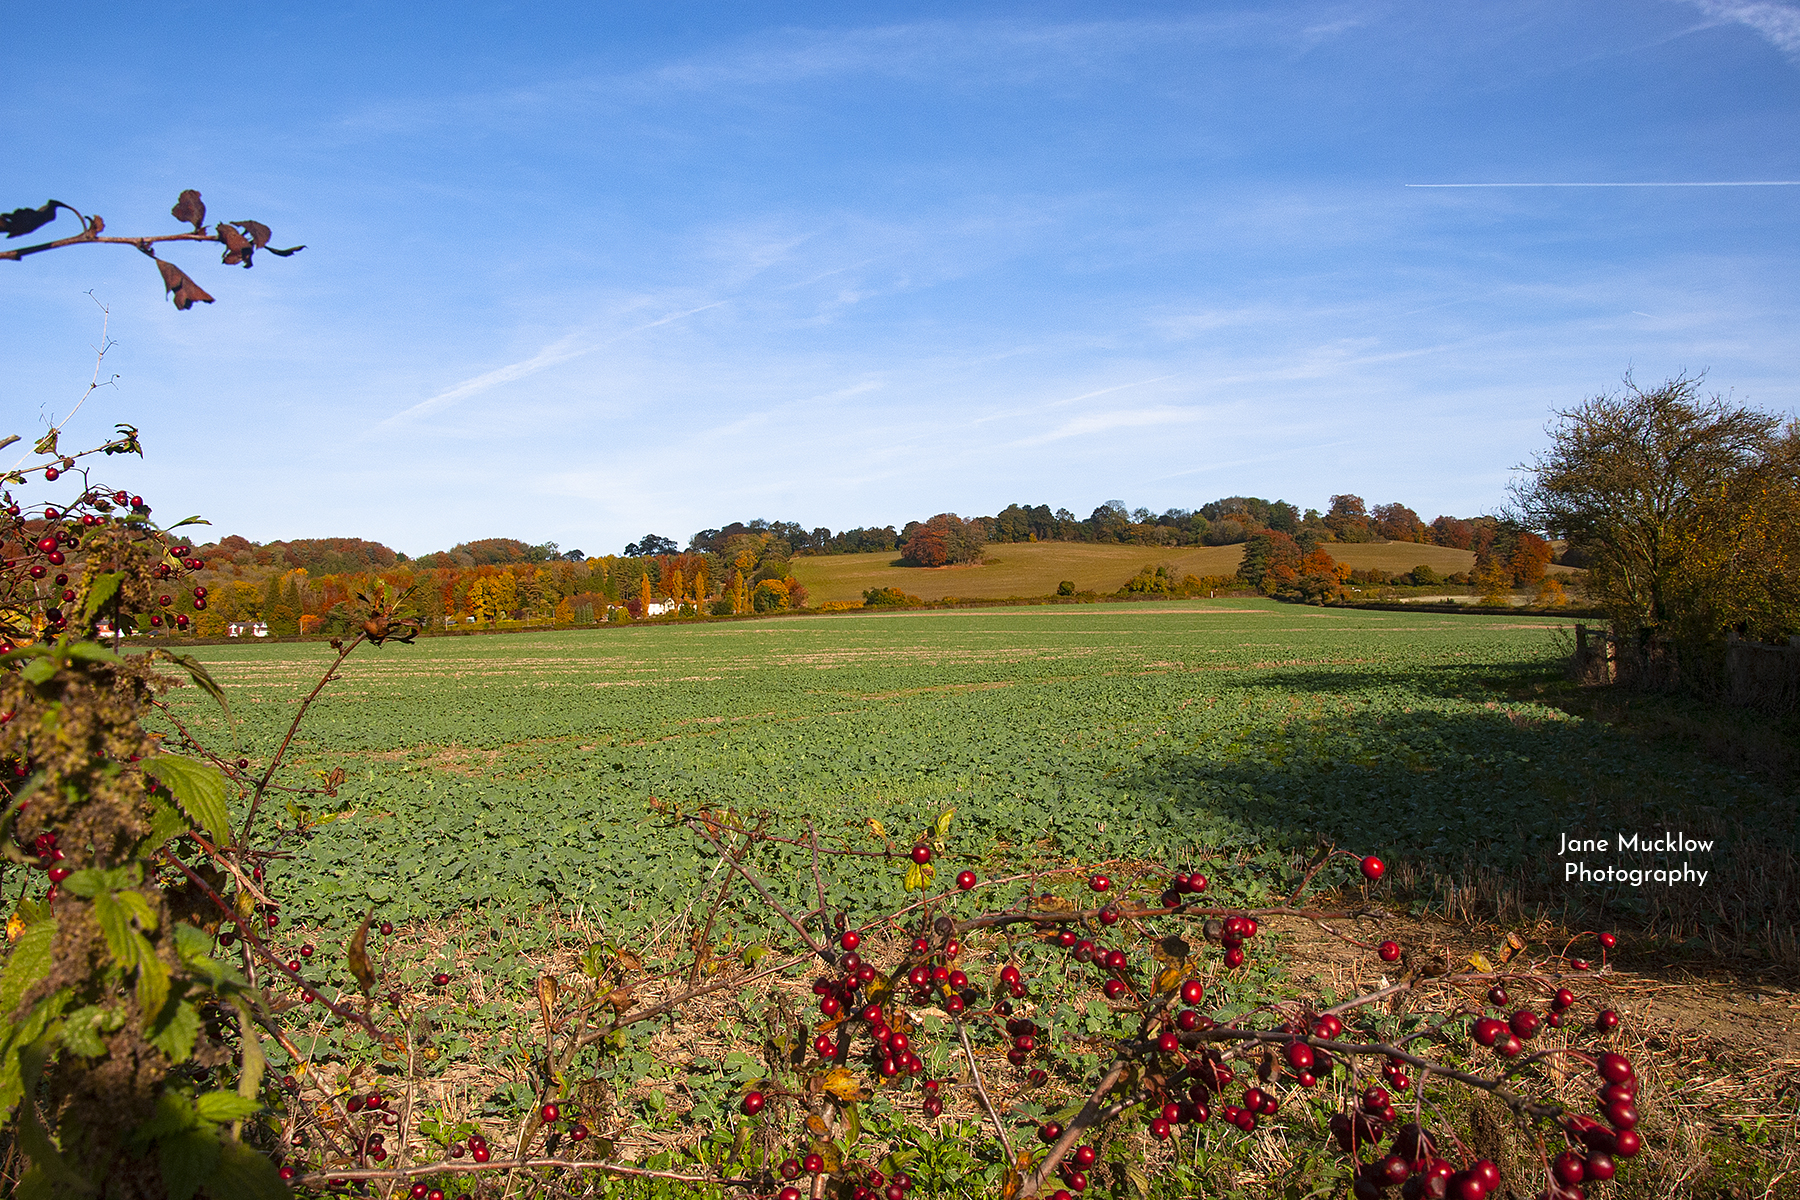 Photo by Jane Mucklow of Autumn fields near Kemsing, Kent.